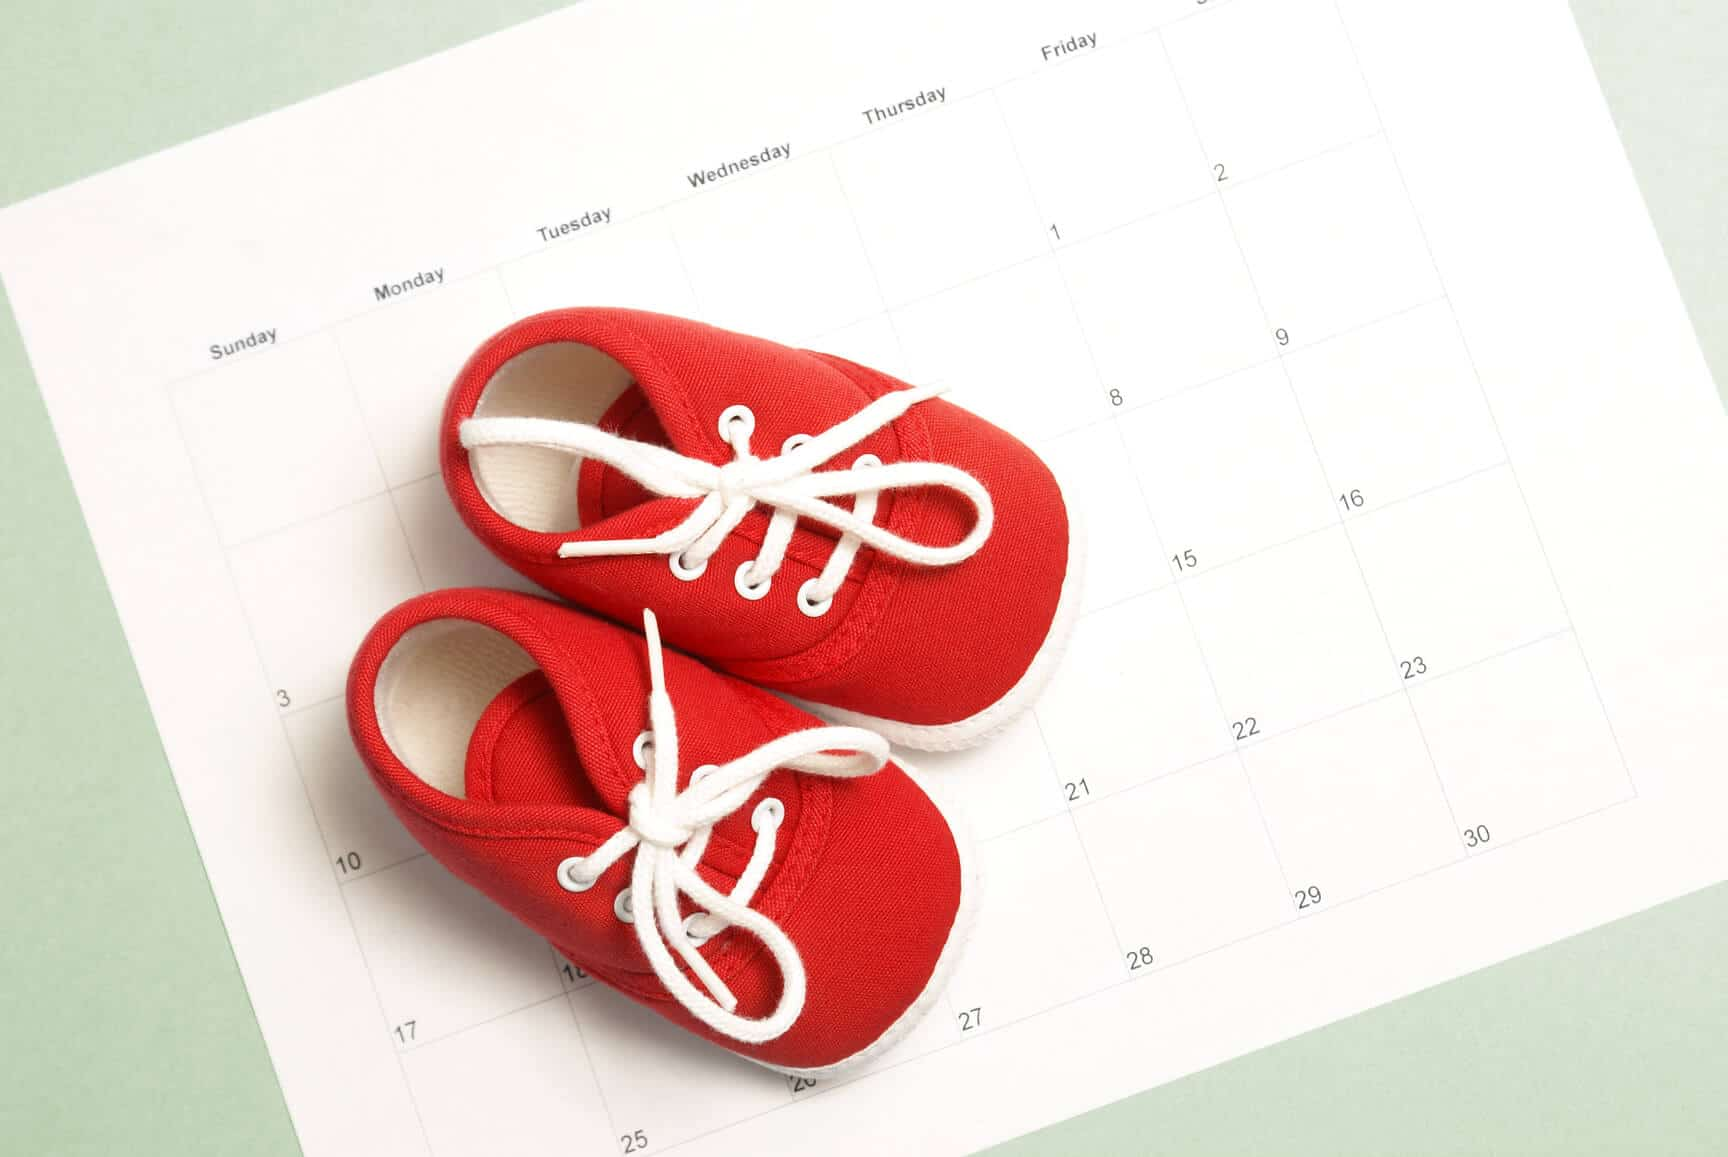 Creating Parenting Plans That Work